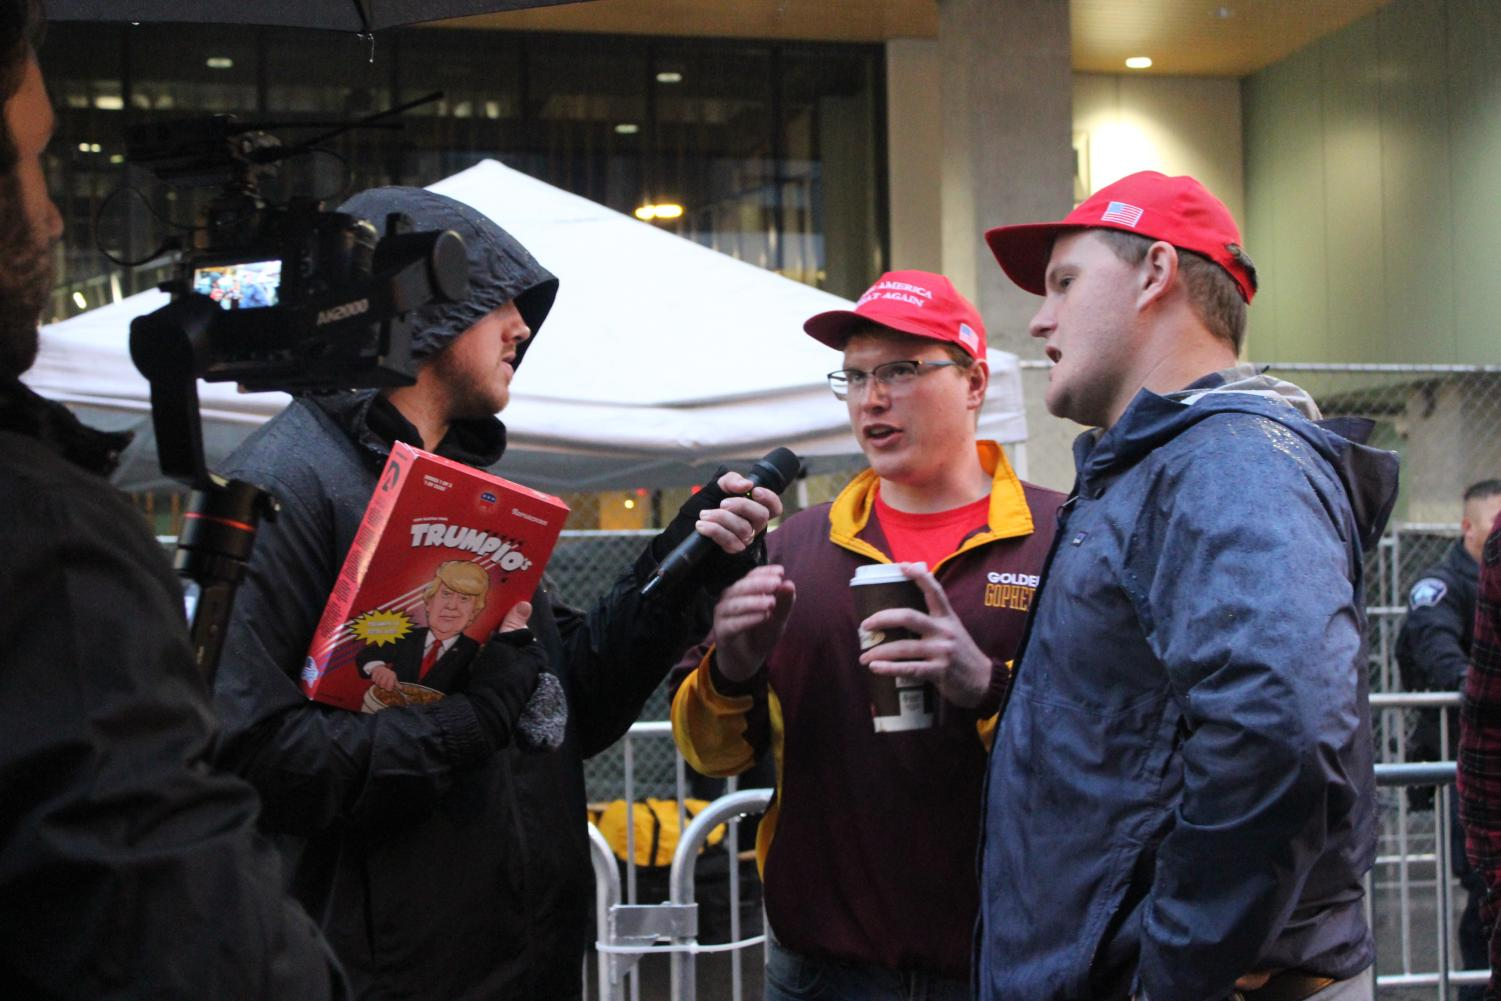 Two Trump supporters get interviewed prior to entering Trumps campaign in Minneapolis starting at 7 p.m Oct. 10.